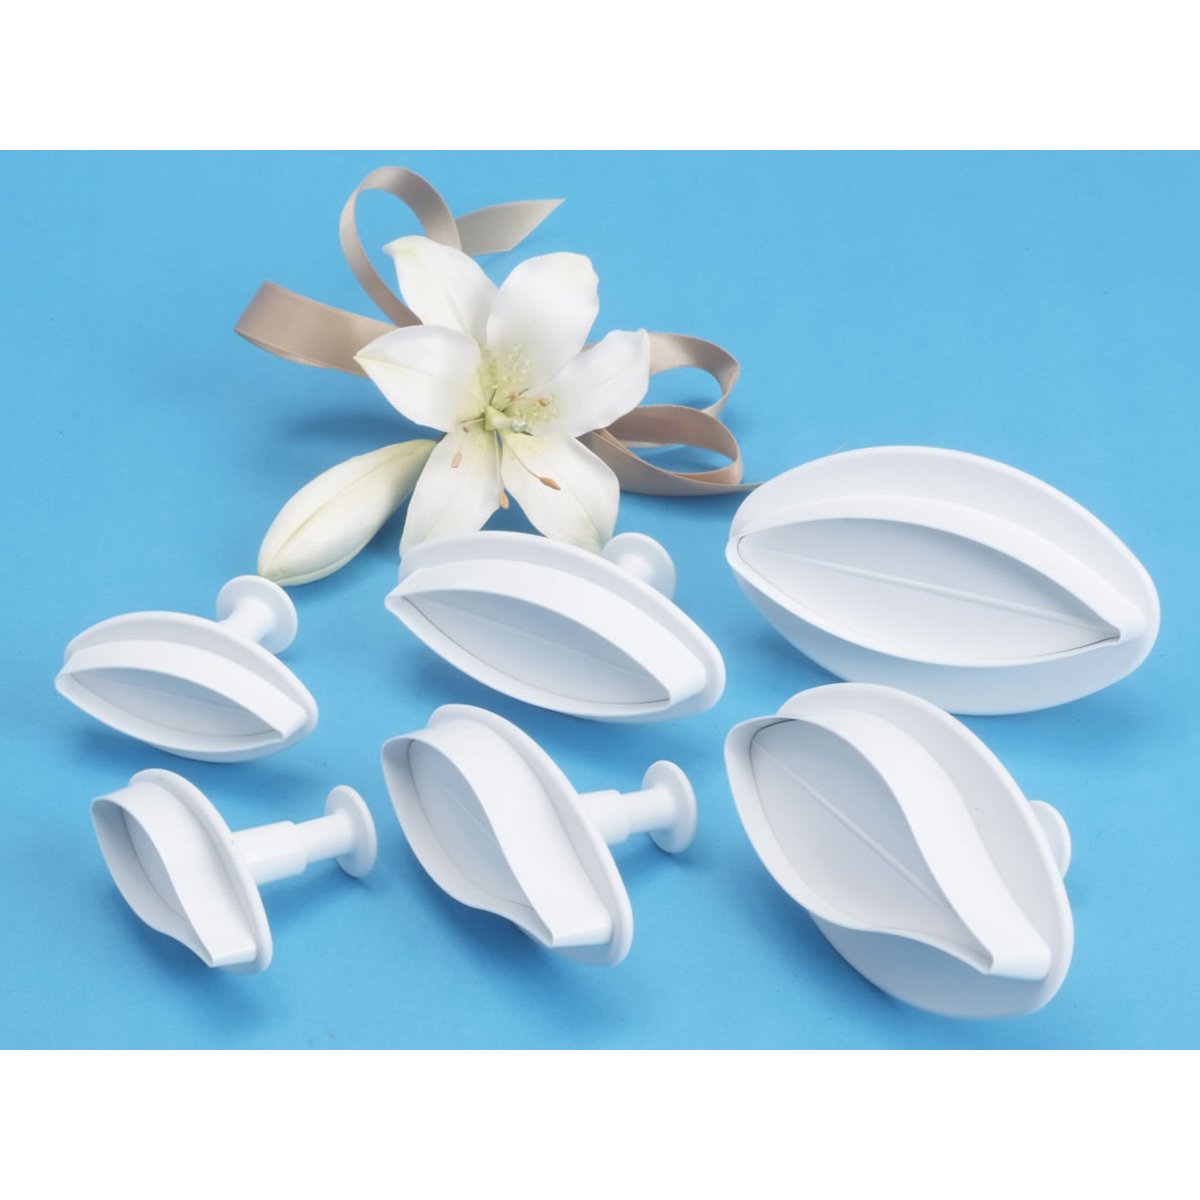 Plunger Cutters 2/Pkg-Veined Lily